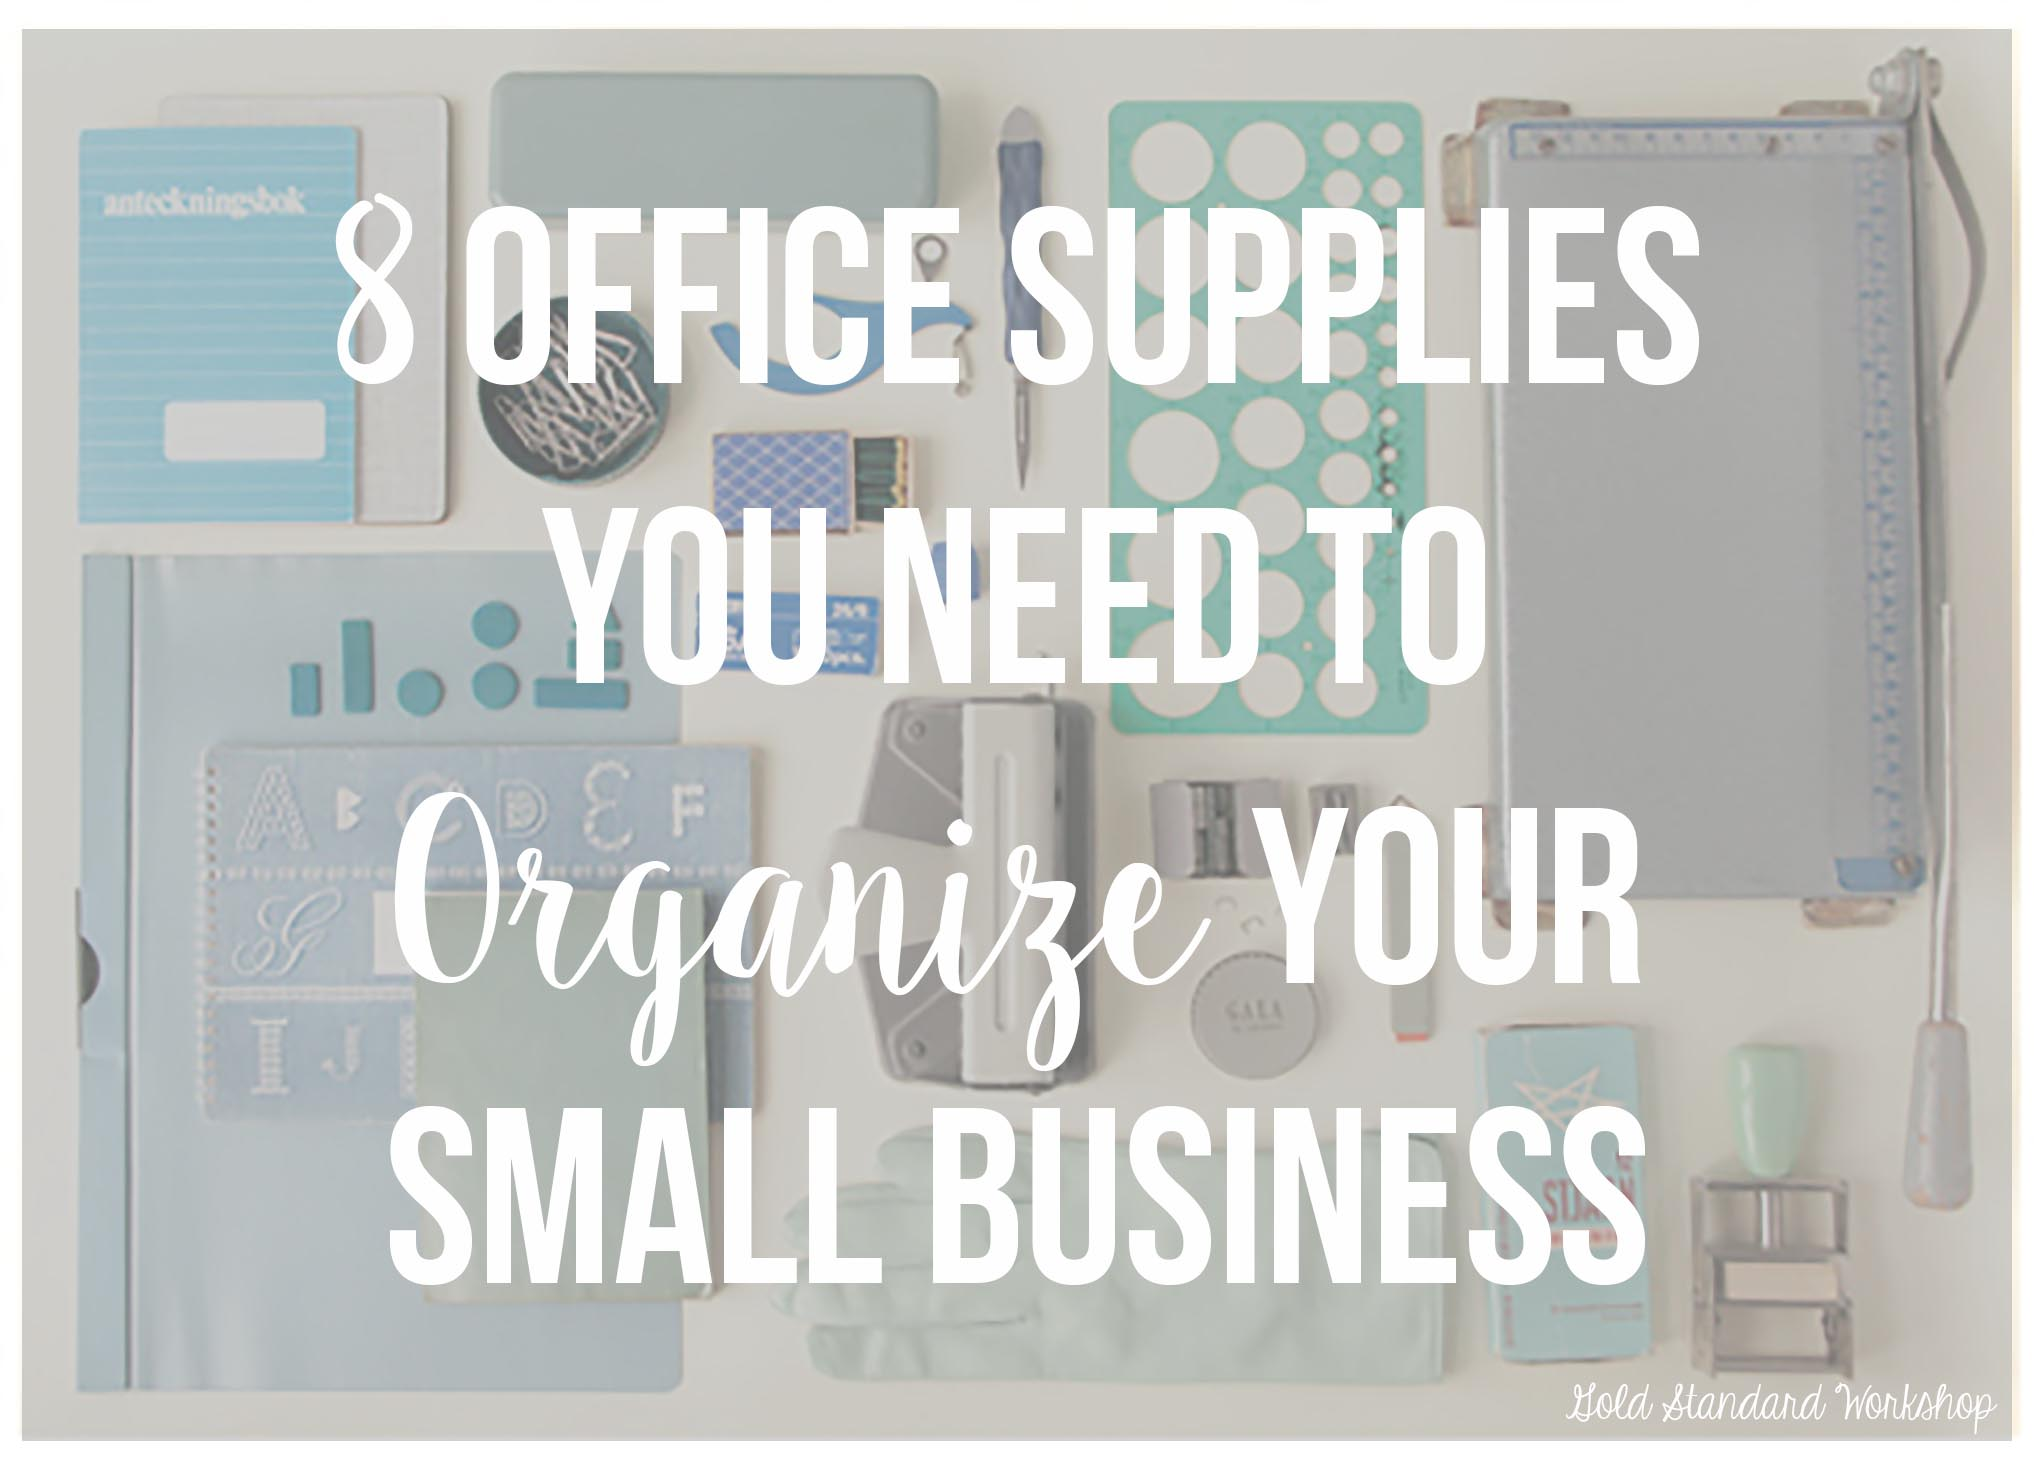 fillable online office supply list free small business forms fax